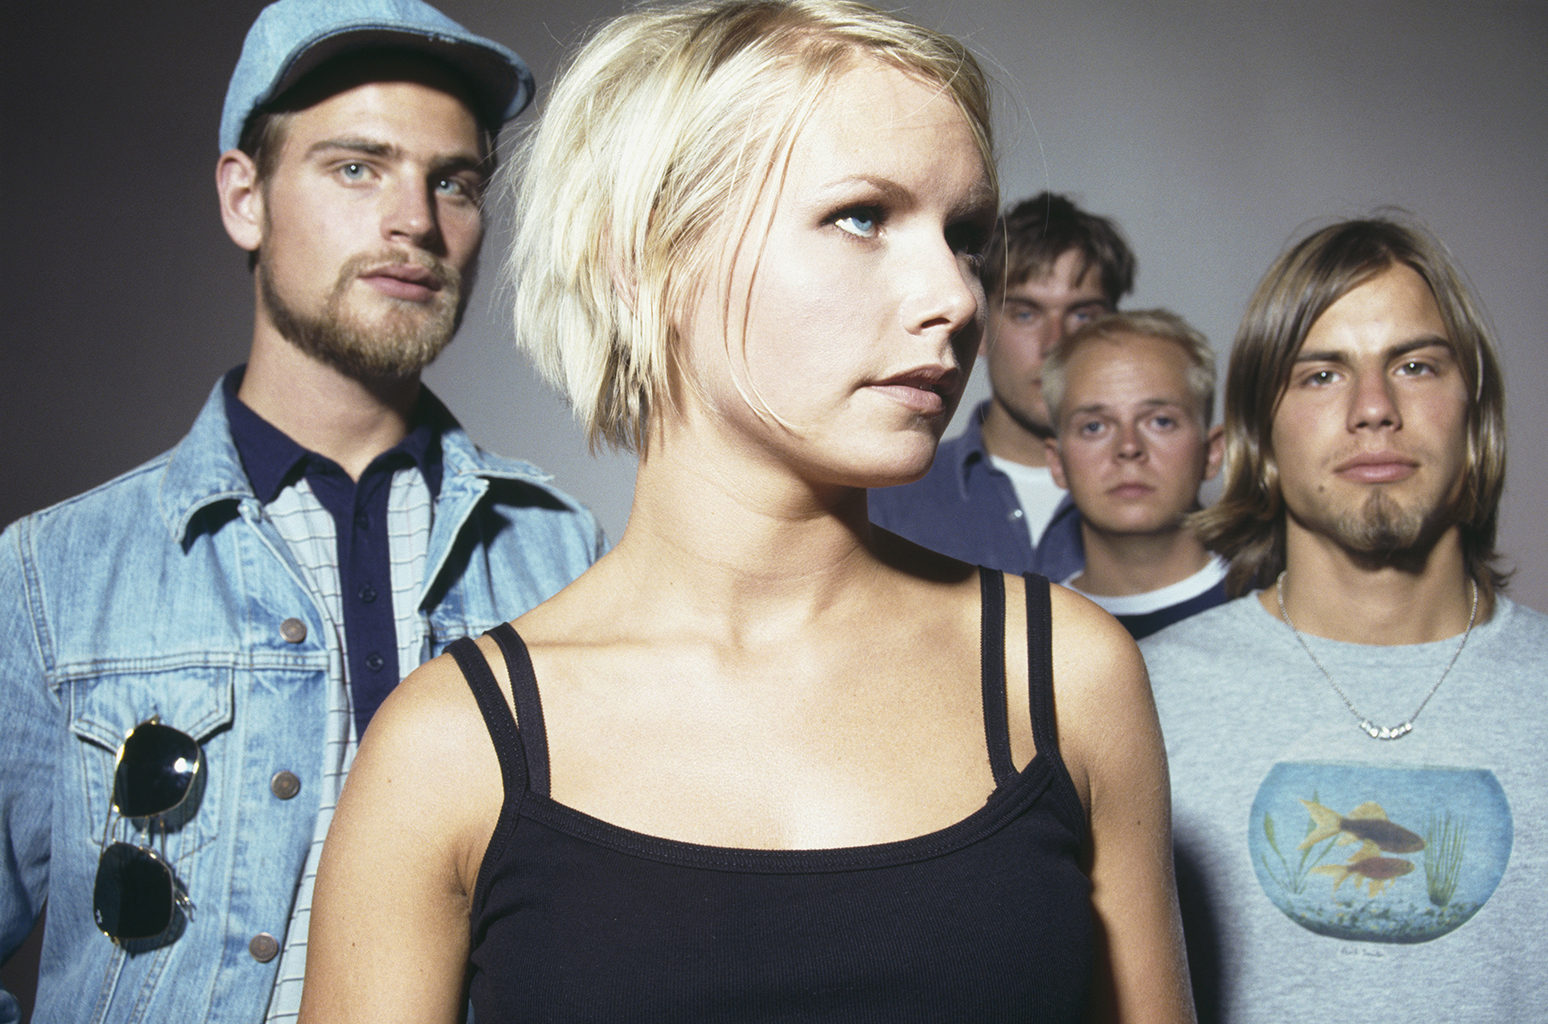 High Resolution Wallpaper | The Cardigans 1548x1024 px